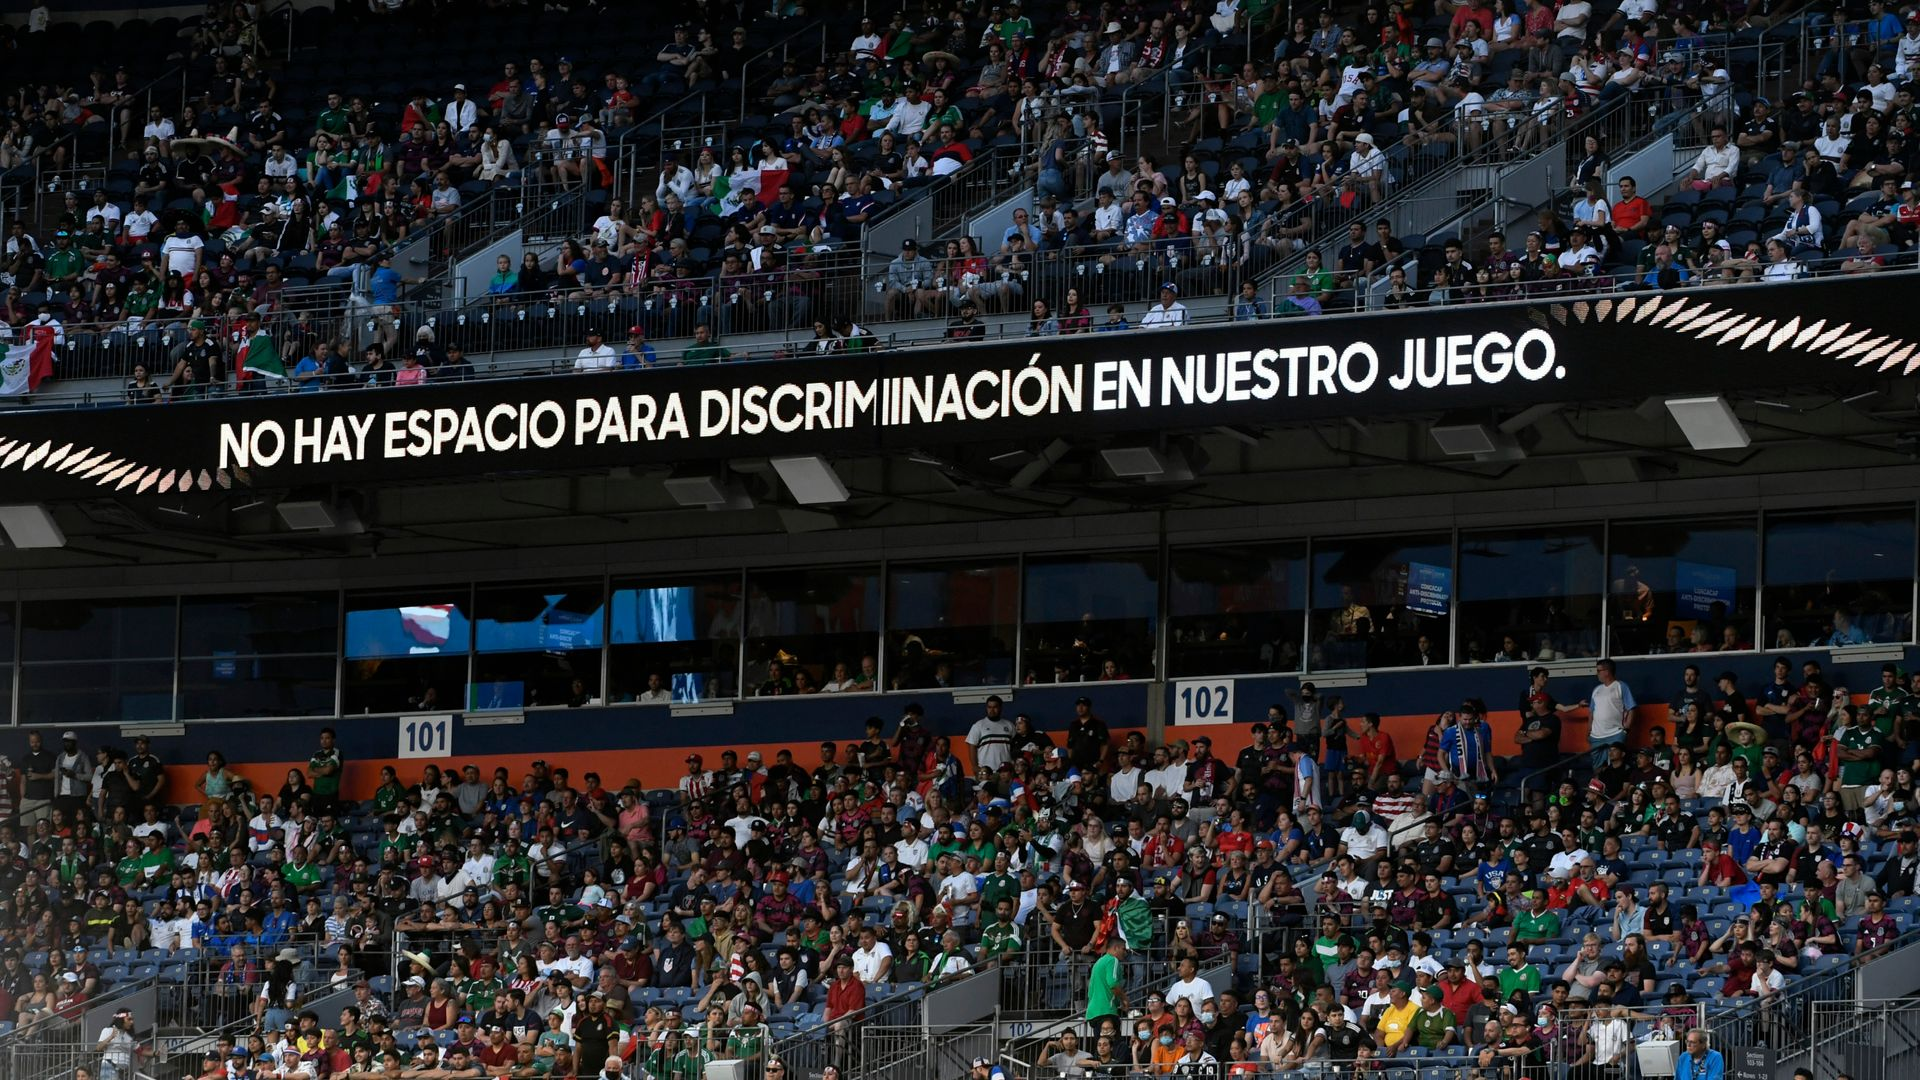 Mexico sanctioned over homophobic chants